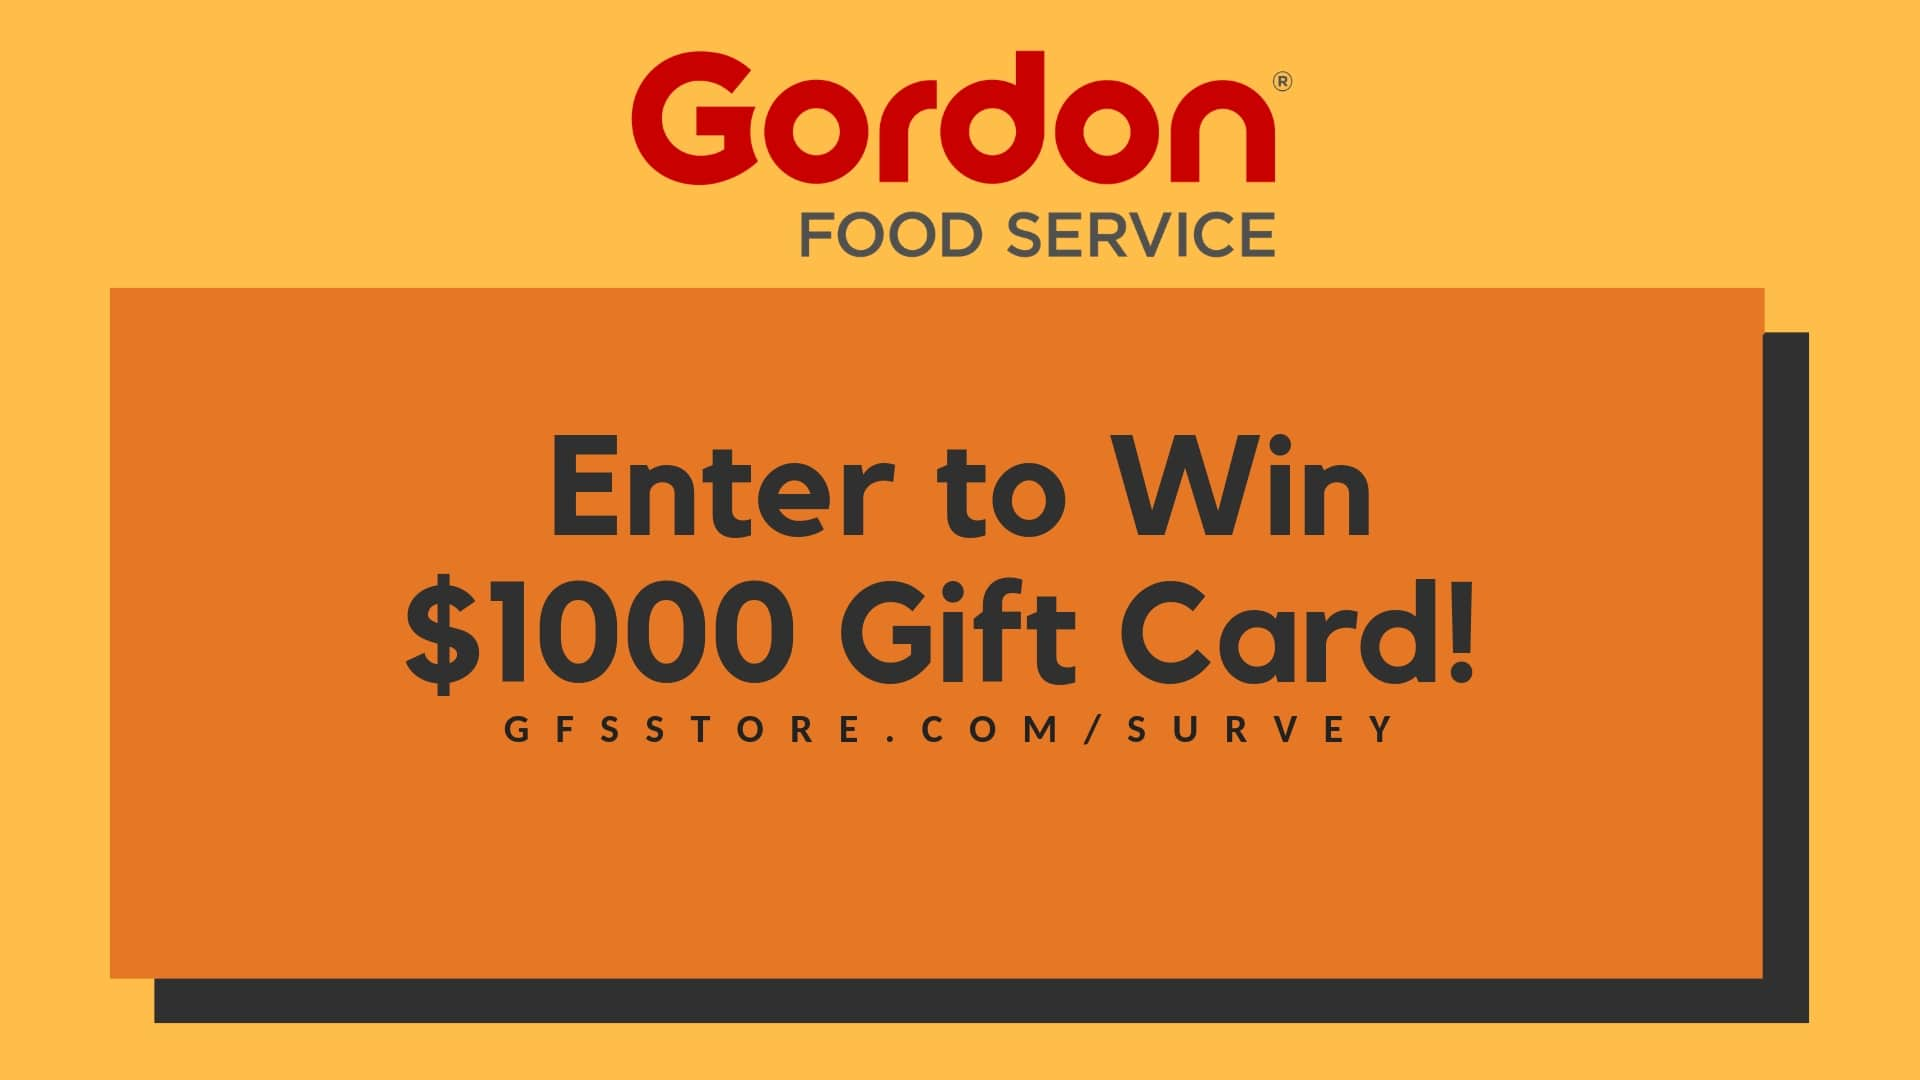 gfs store survey sweepstakes